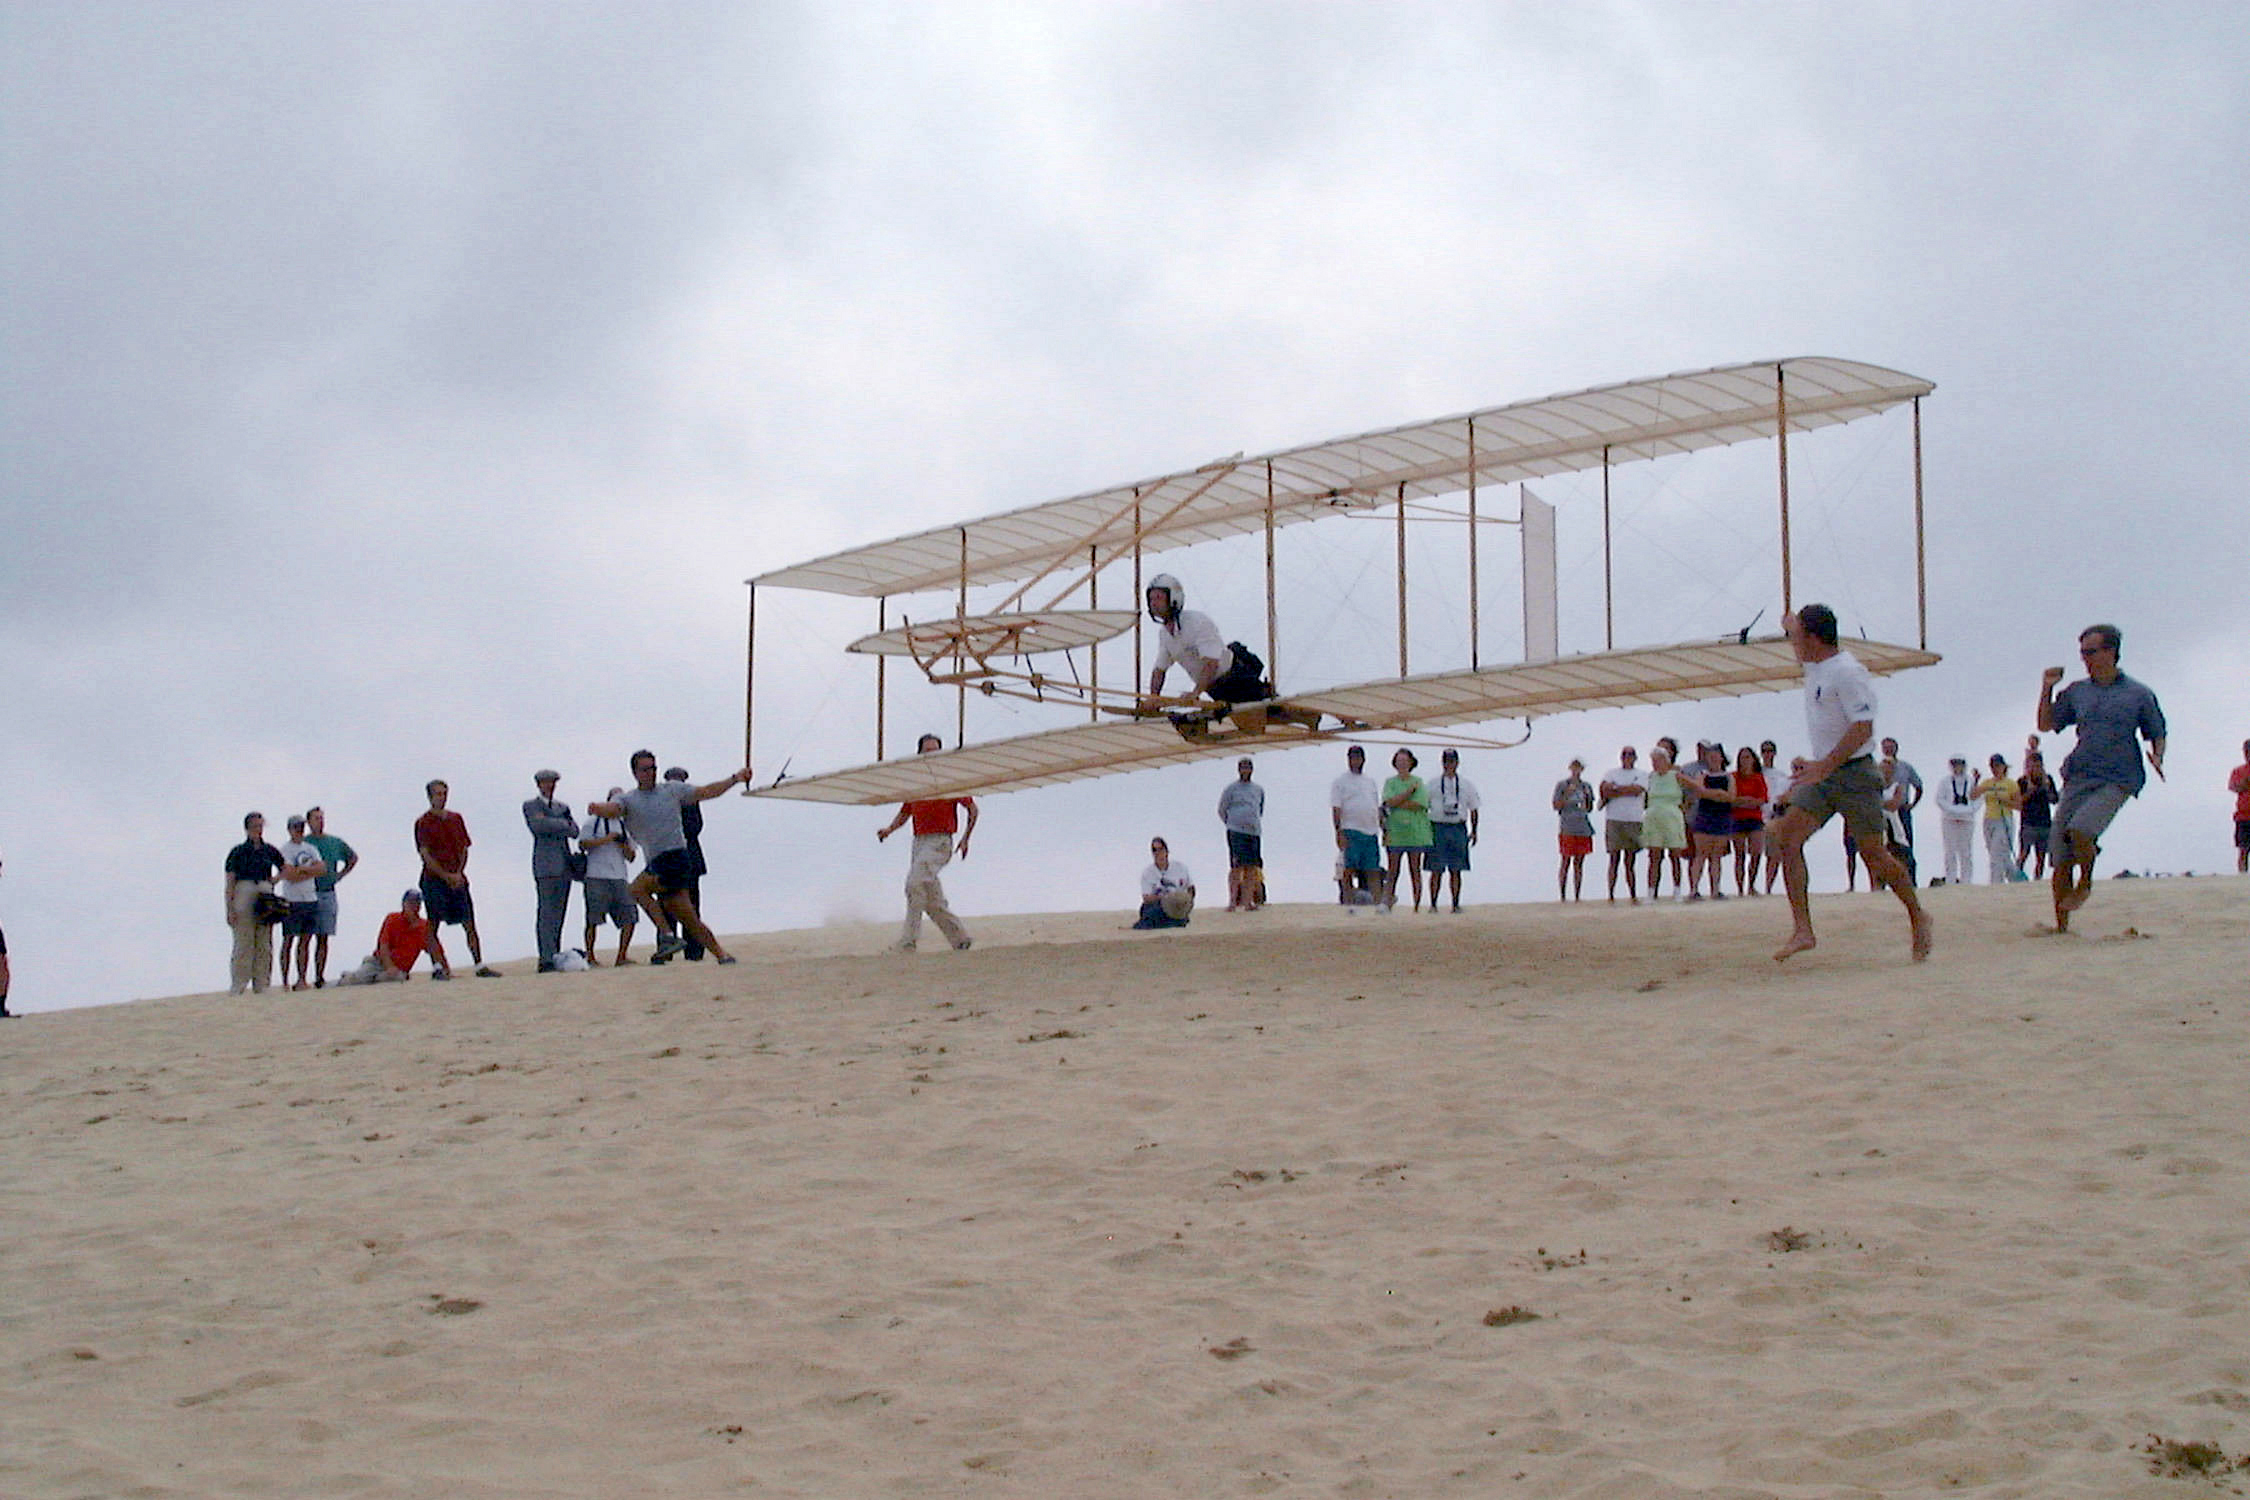 the flight of the kitty hawk Near kitty hawk, north carolina, orville and wilbur wright make the first  successful flight in history of a self-propelled, heavier-than-air aircraft.